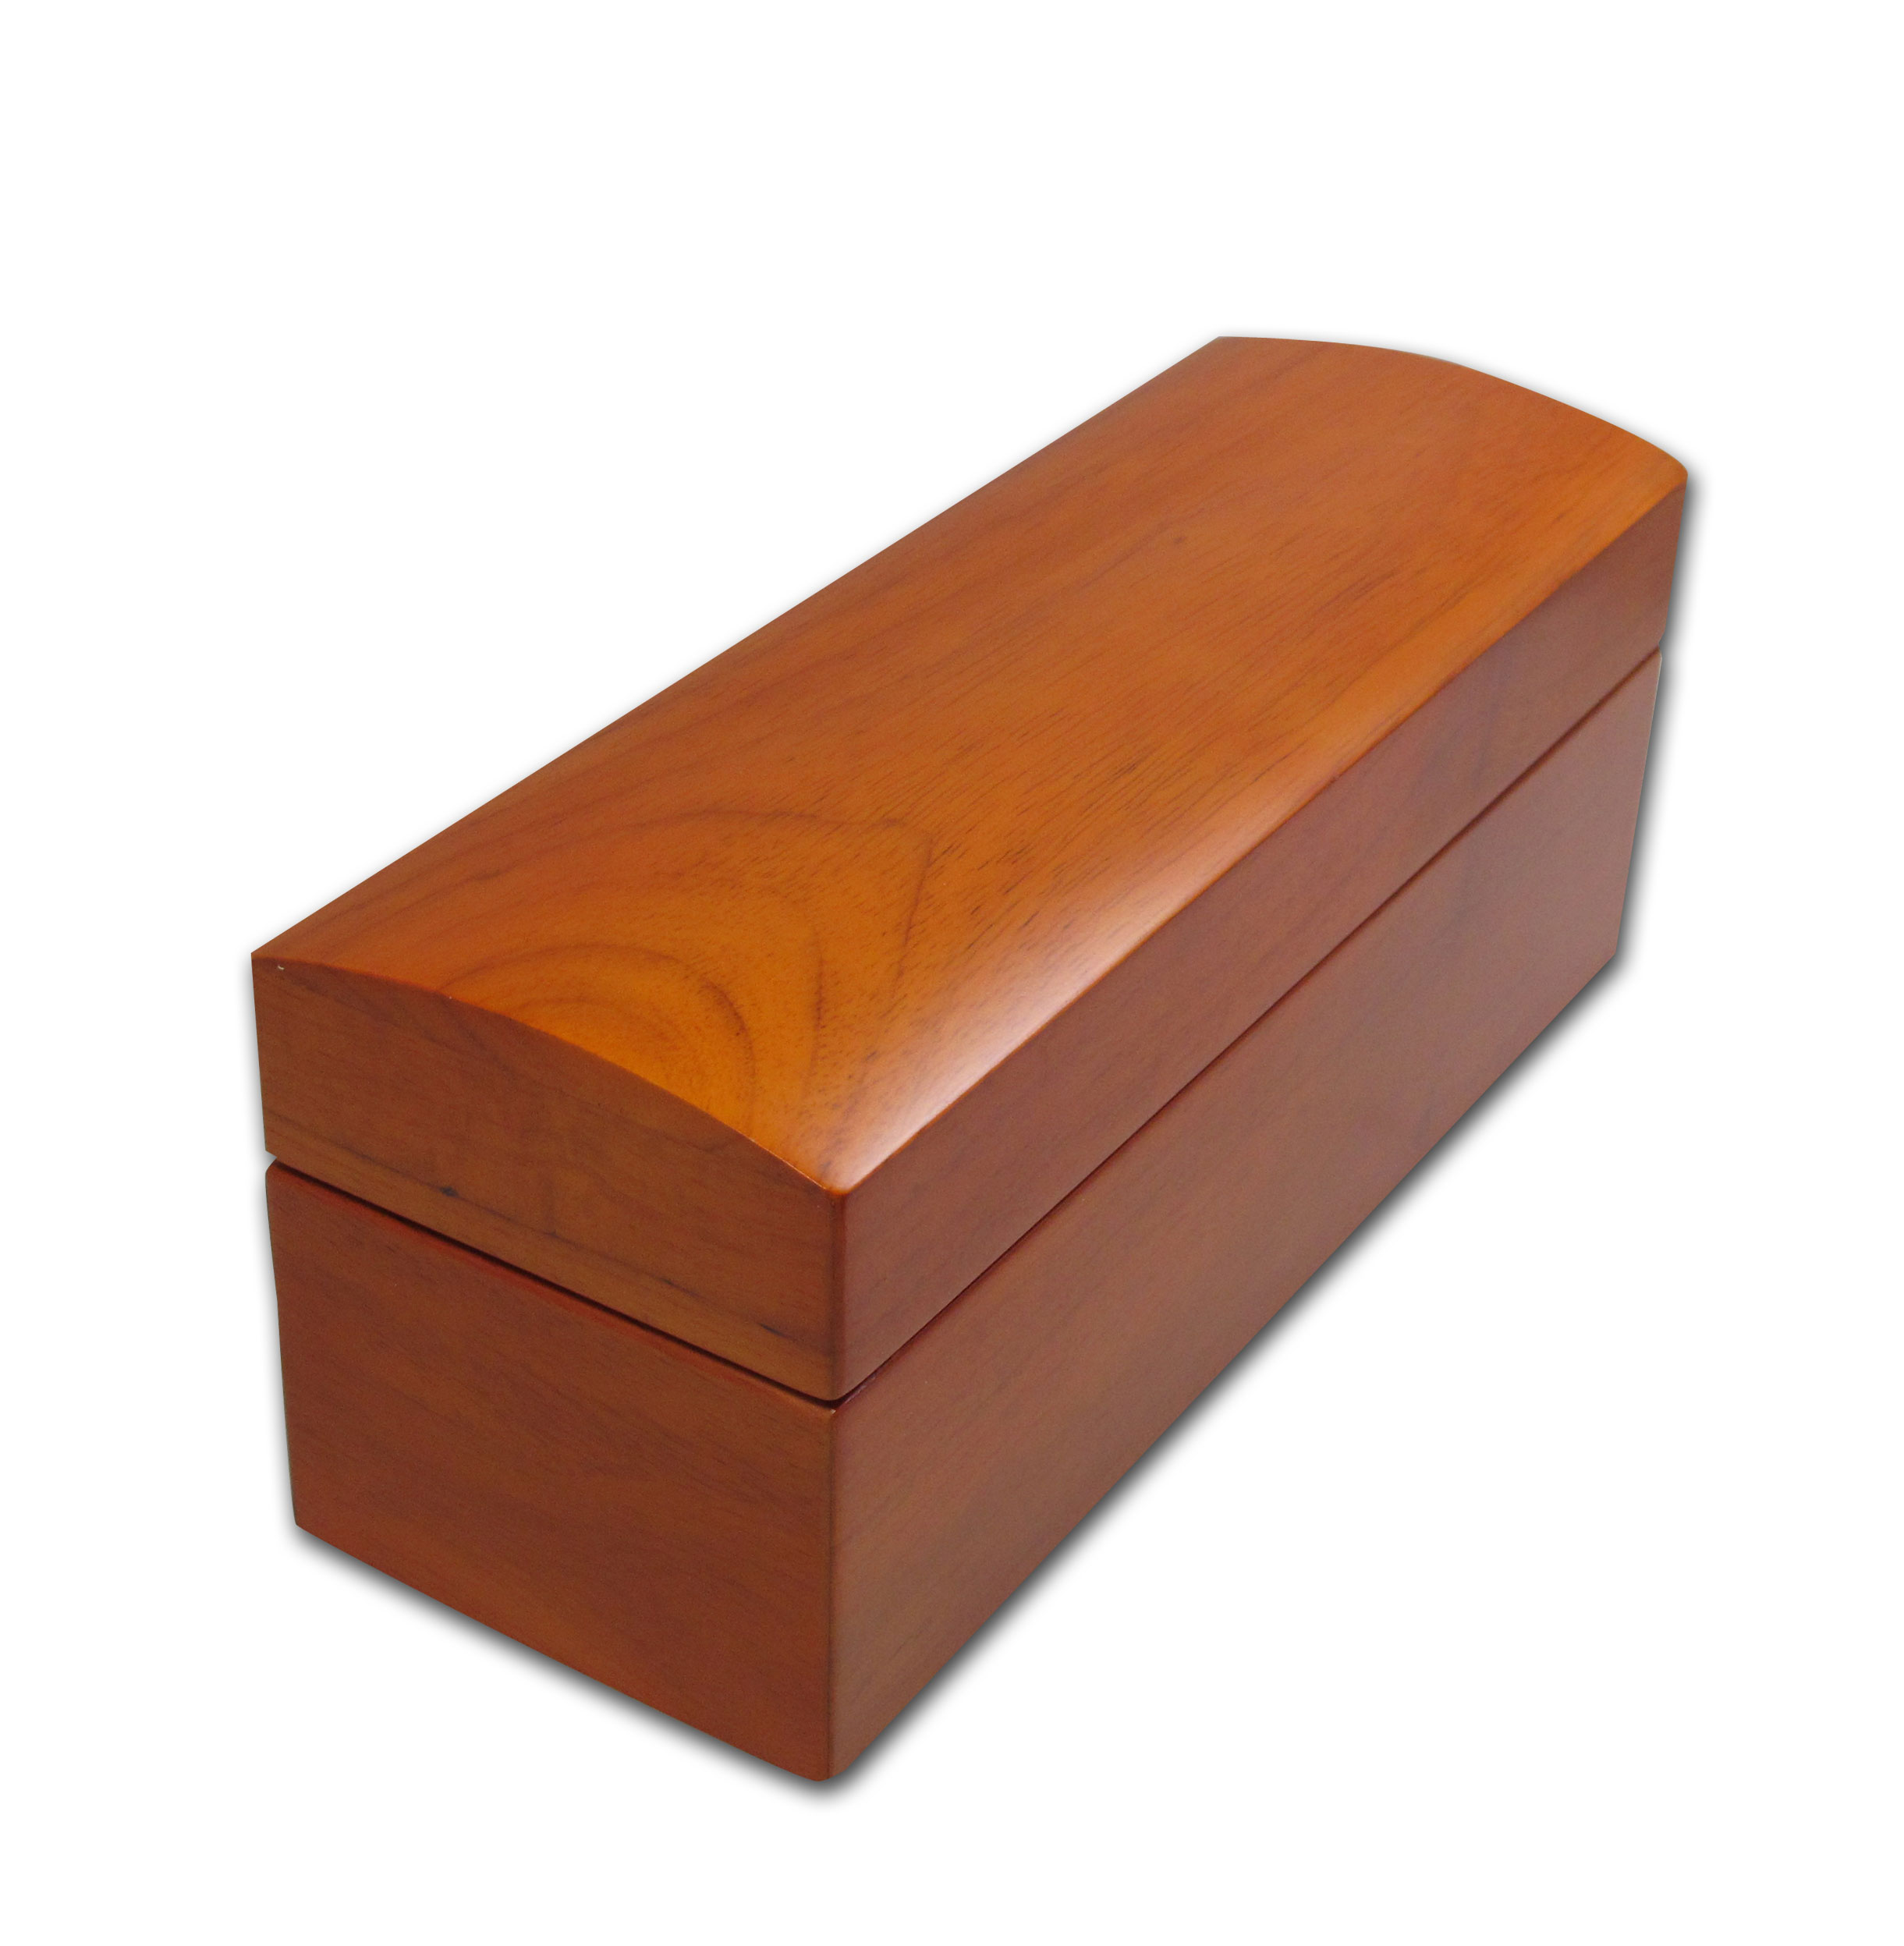 Wooden Slab Gift Box - Twenty Slabs